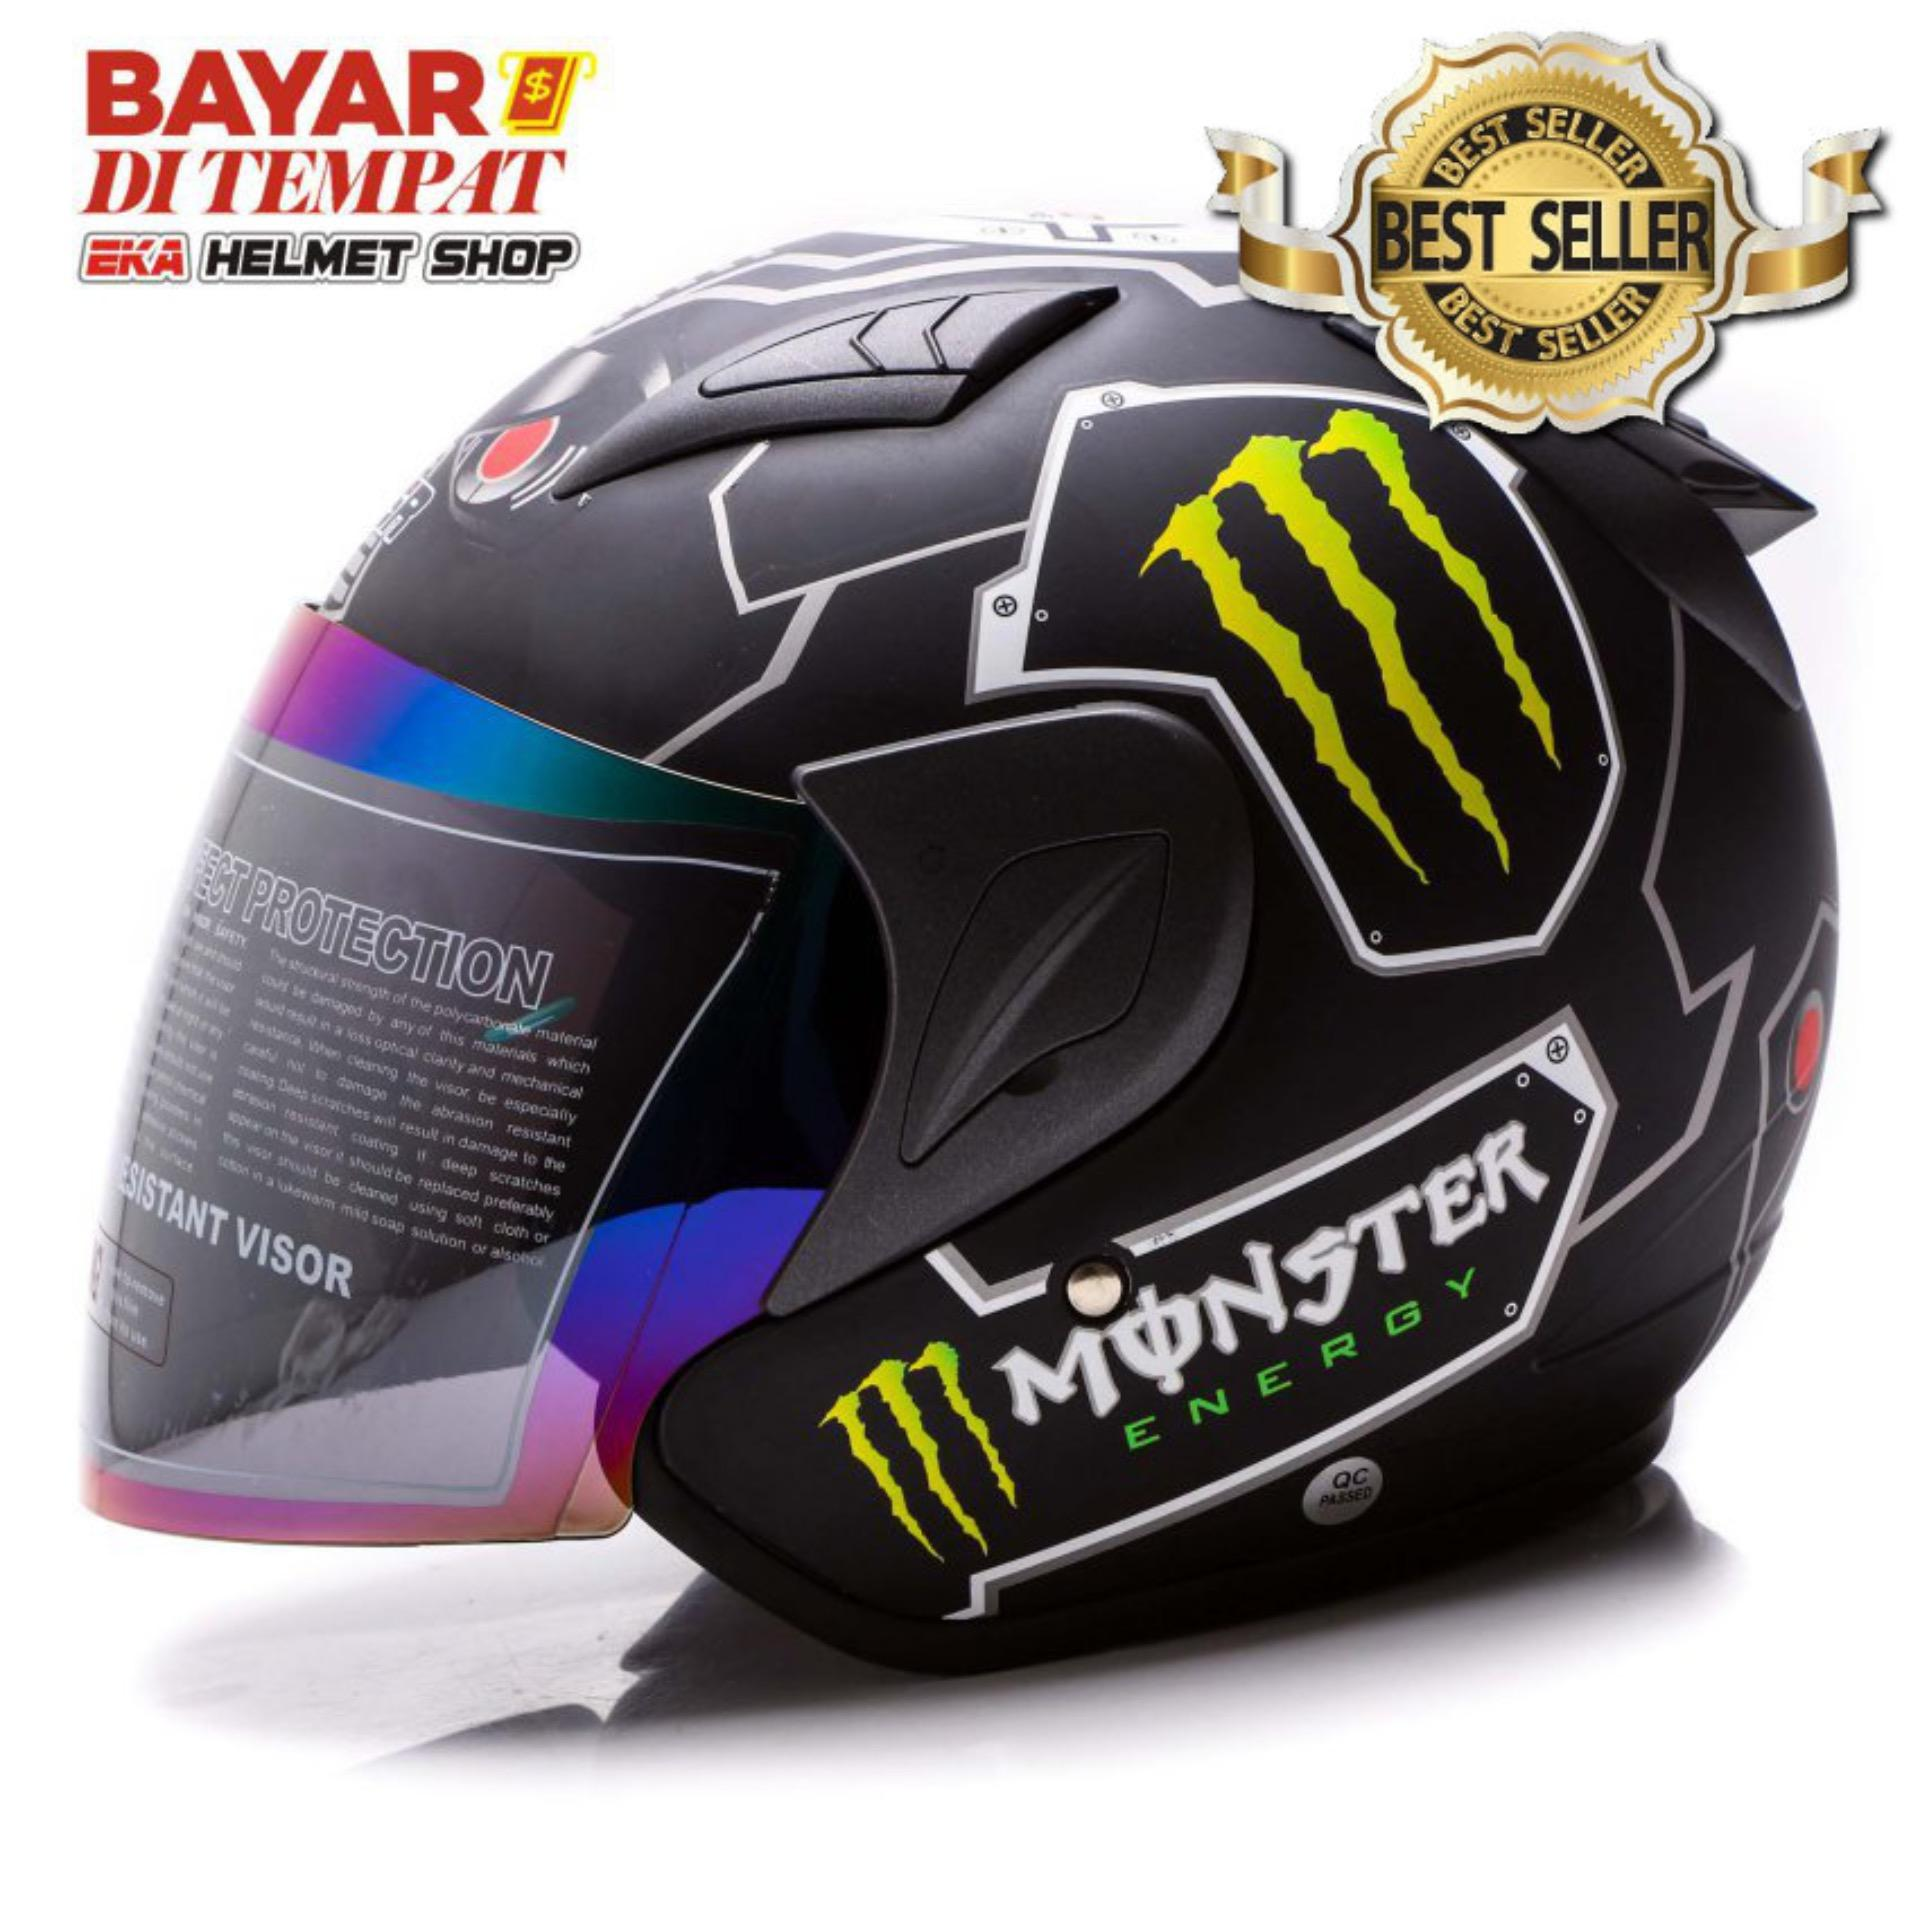 Msr Helmet Javelin - Monster - Hitam Doff By Eka Helmet Shop.